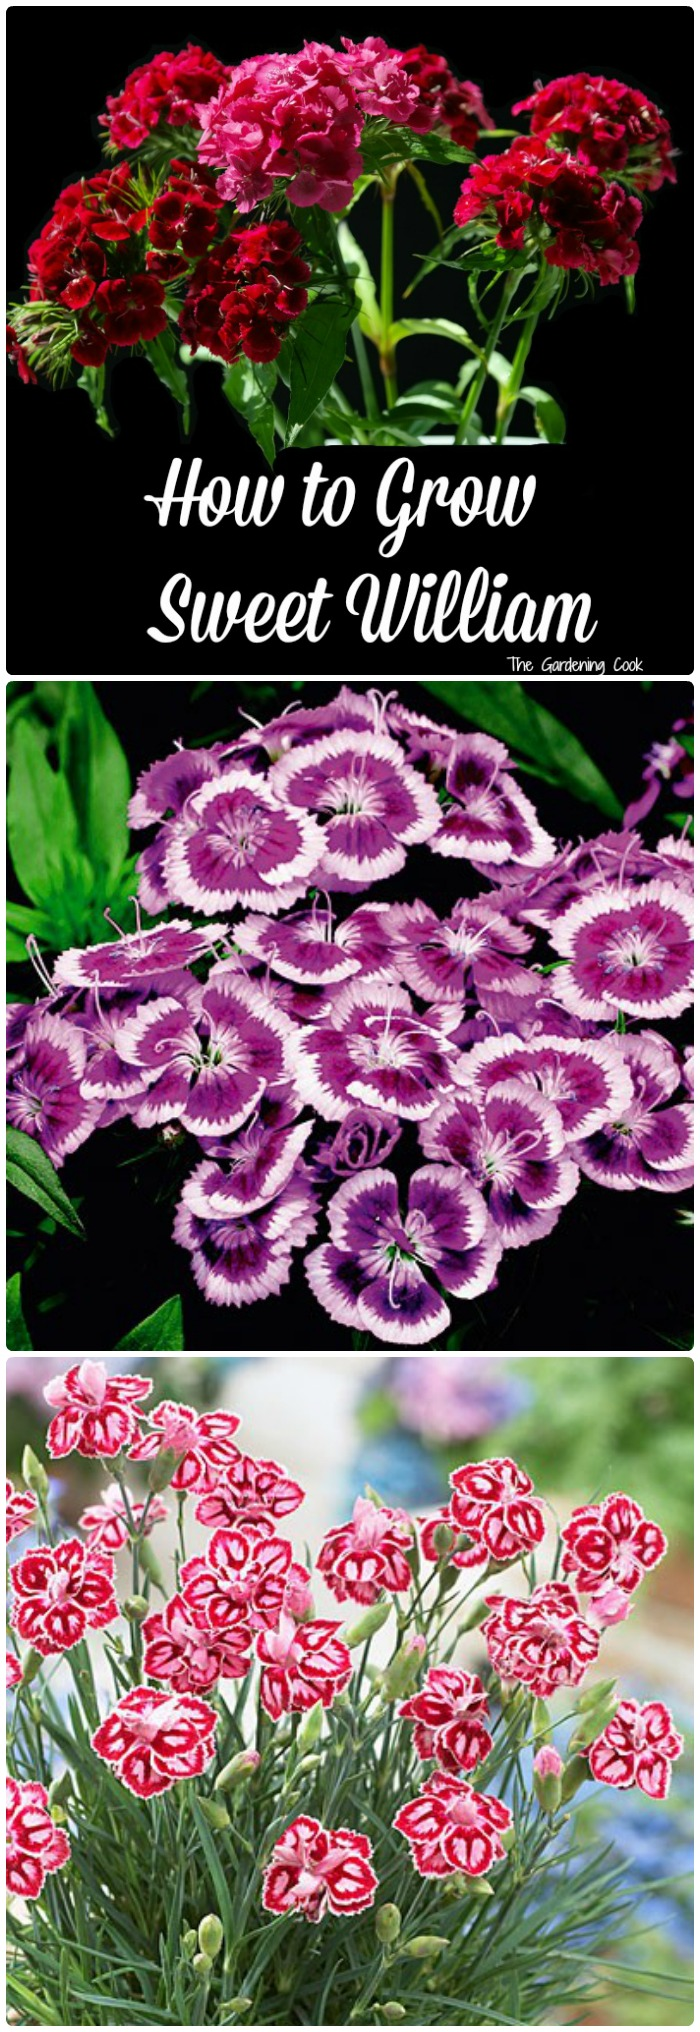 How to grow Sweet William - Dianthus. This plant makes nice mounds of bright color all summer long. Some are annuals and some are quite hardy. thegardneingcook.com